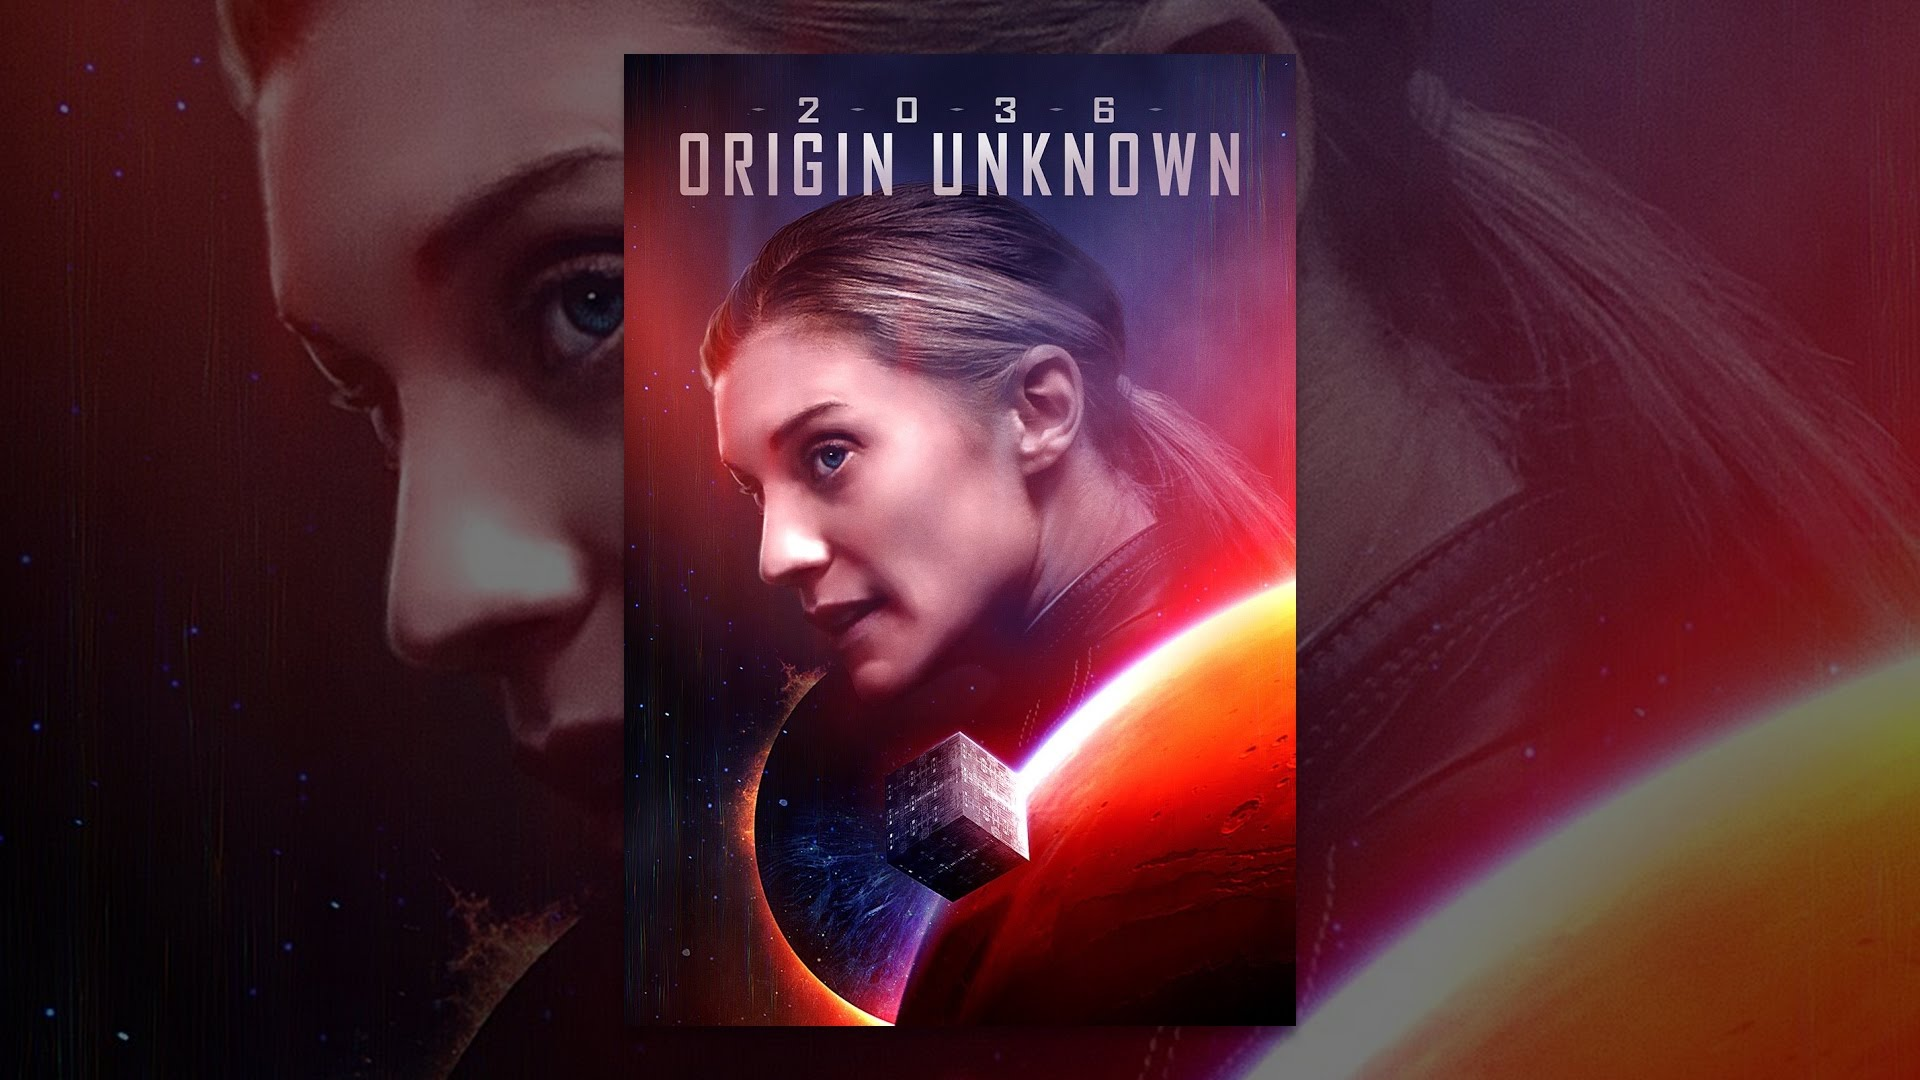 Watch 2036 Origin Unknown Full HD Film